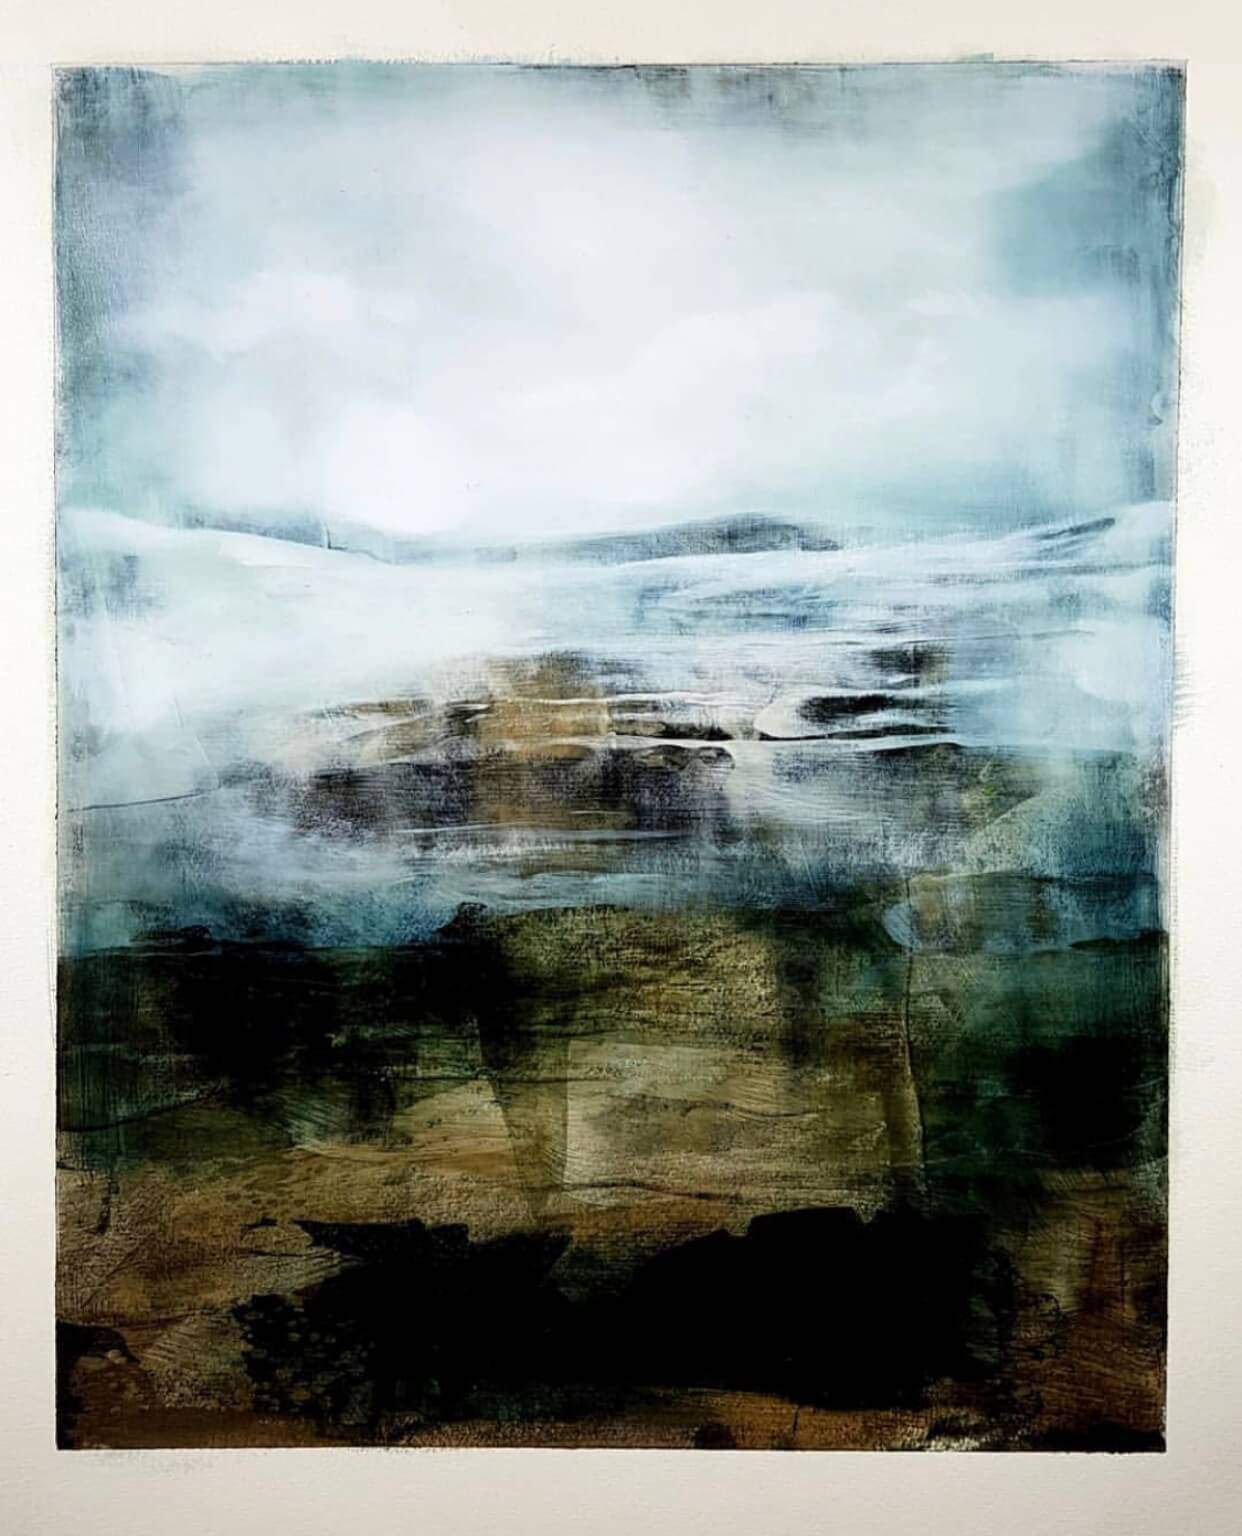 JOACHIM VAN DER VLUGT UNTITLED ABSTRACT LANDSCAPES AT ZEBRA ONE GALLERY